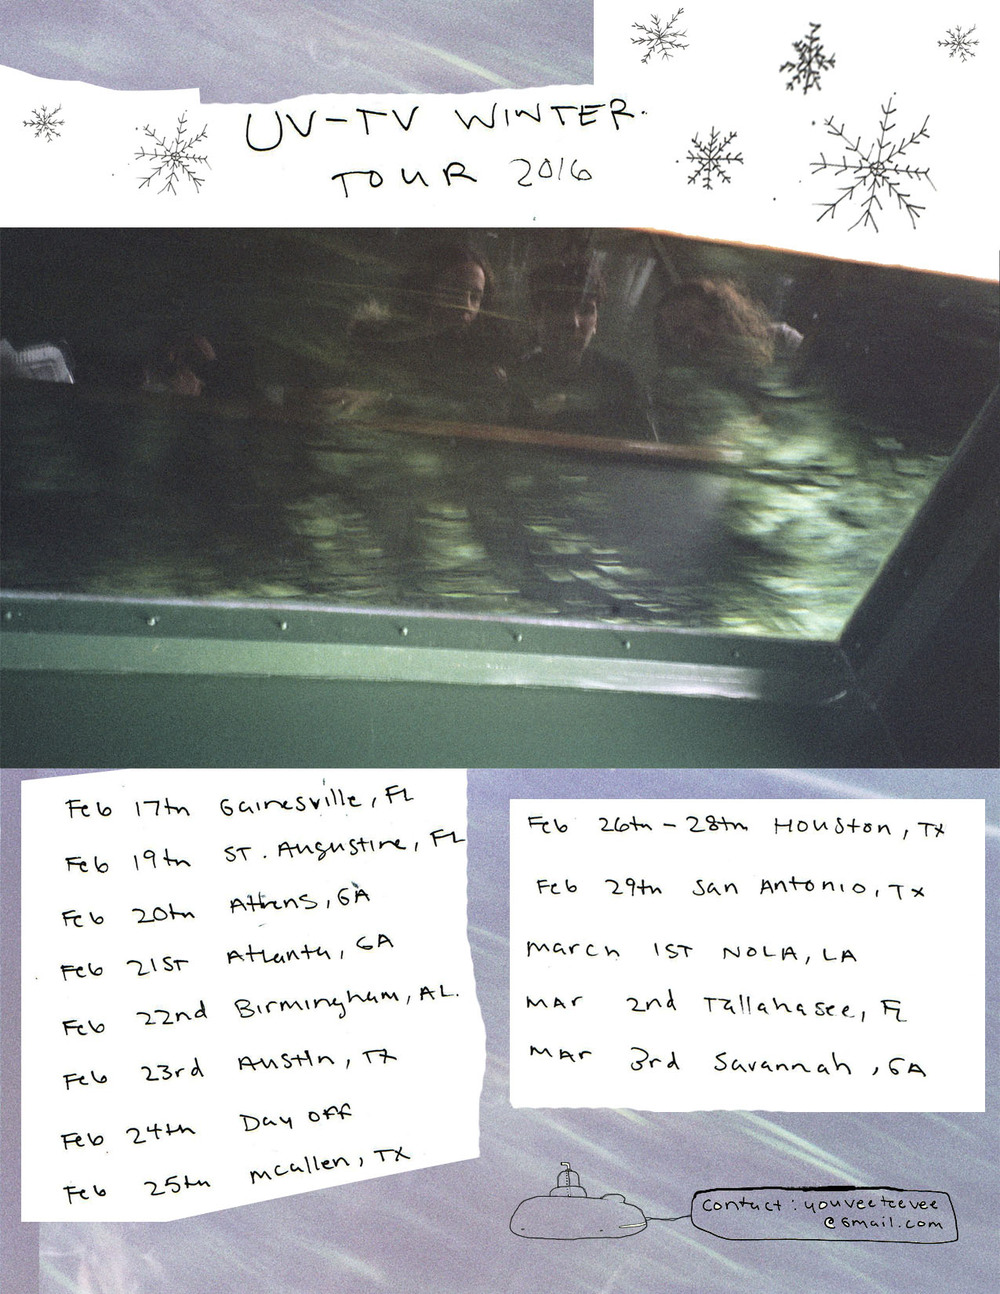 UV_TV_WINTER_TOUR_FLYER.jpg